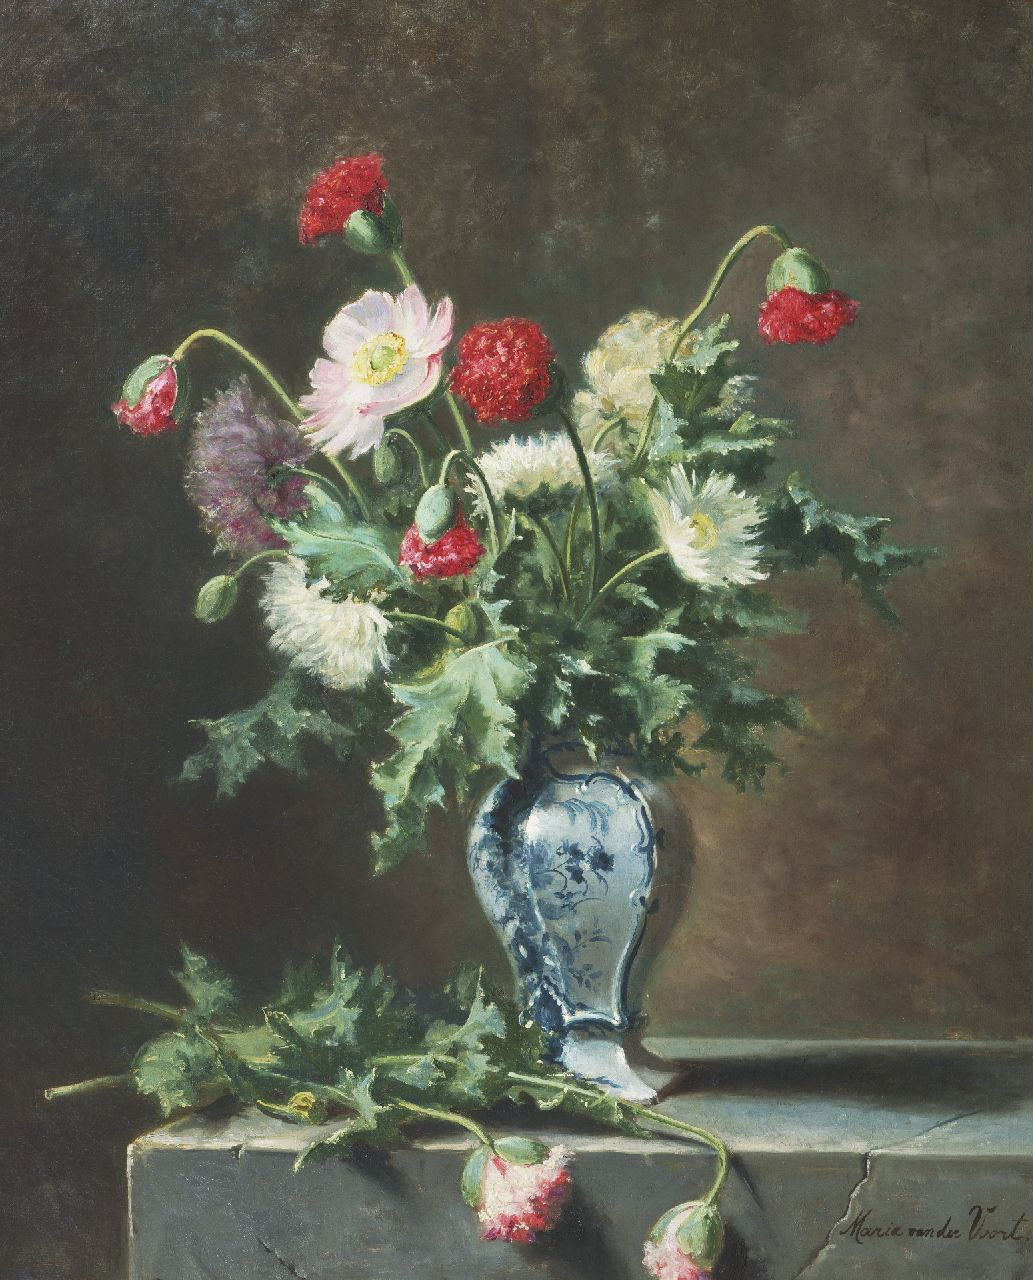 Voort in de Betouw-Nourney M. van der | Maria van der Voort in de Betouw-Nourney | Paintings offered for sale | A still life with poppies, oil on canvas 79.2 x 64.7 cm, signed l.r.